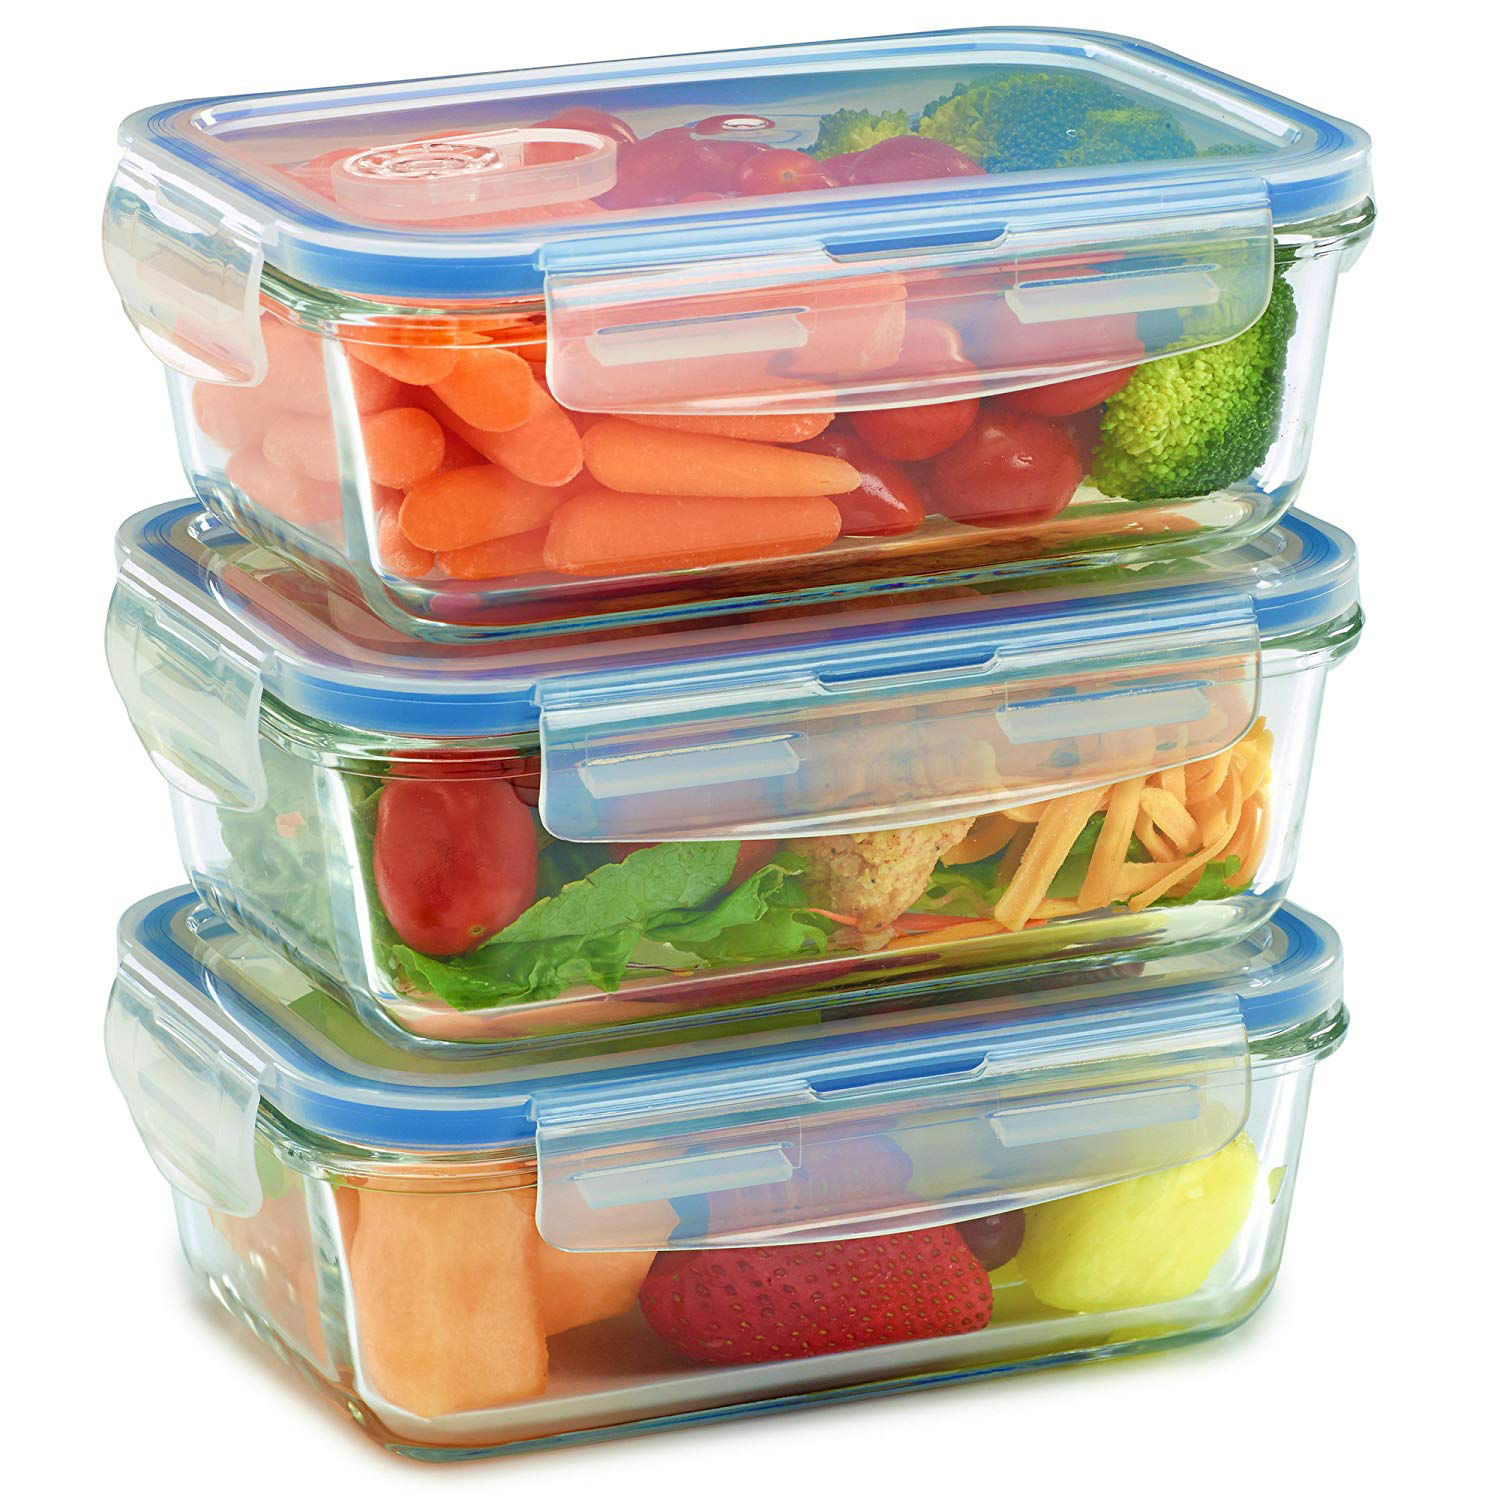 9 Best Glass Food Storage Containers 2019, According to ...